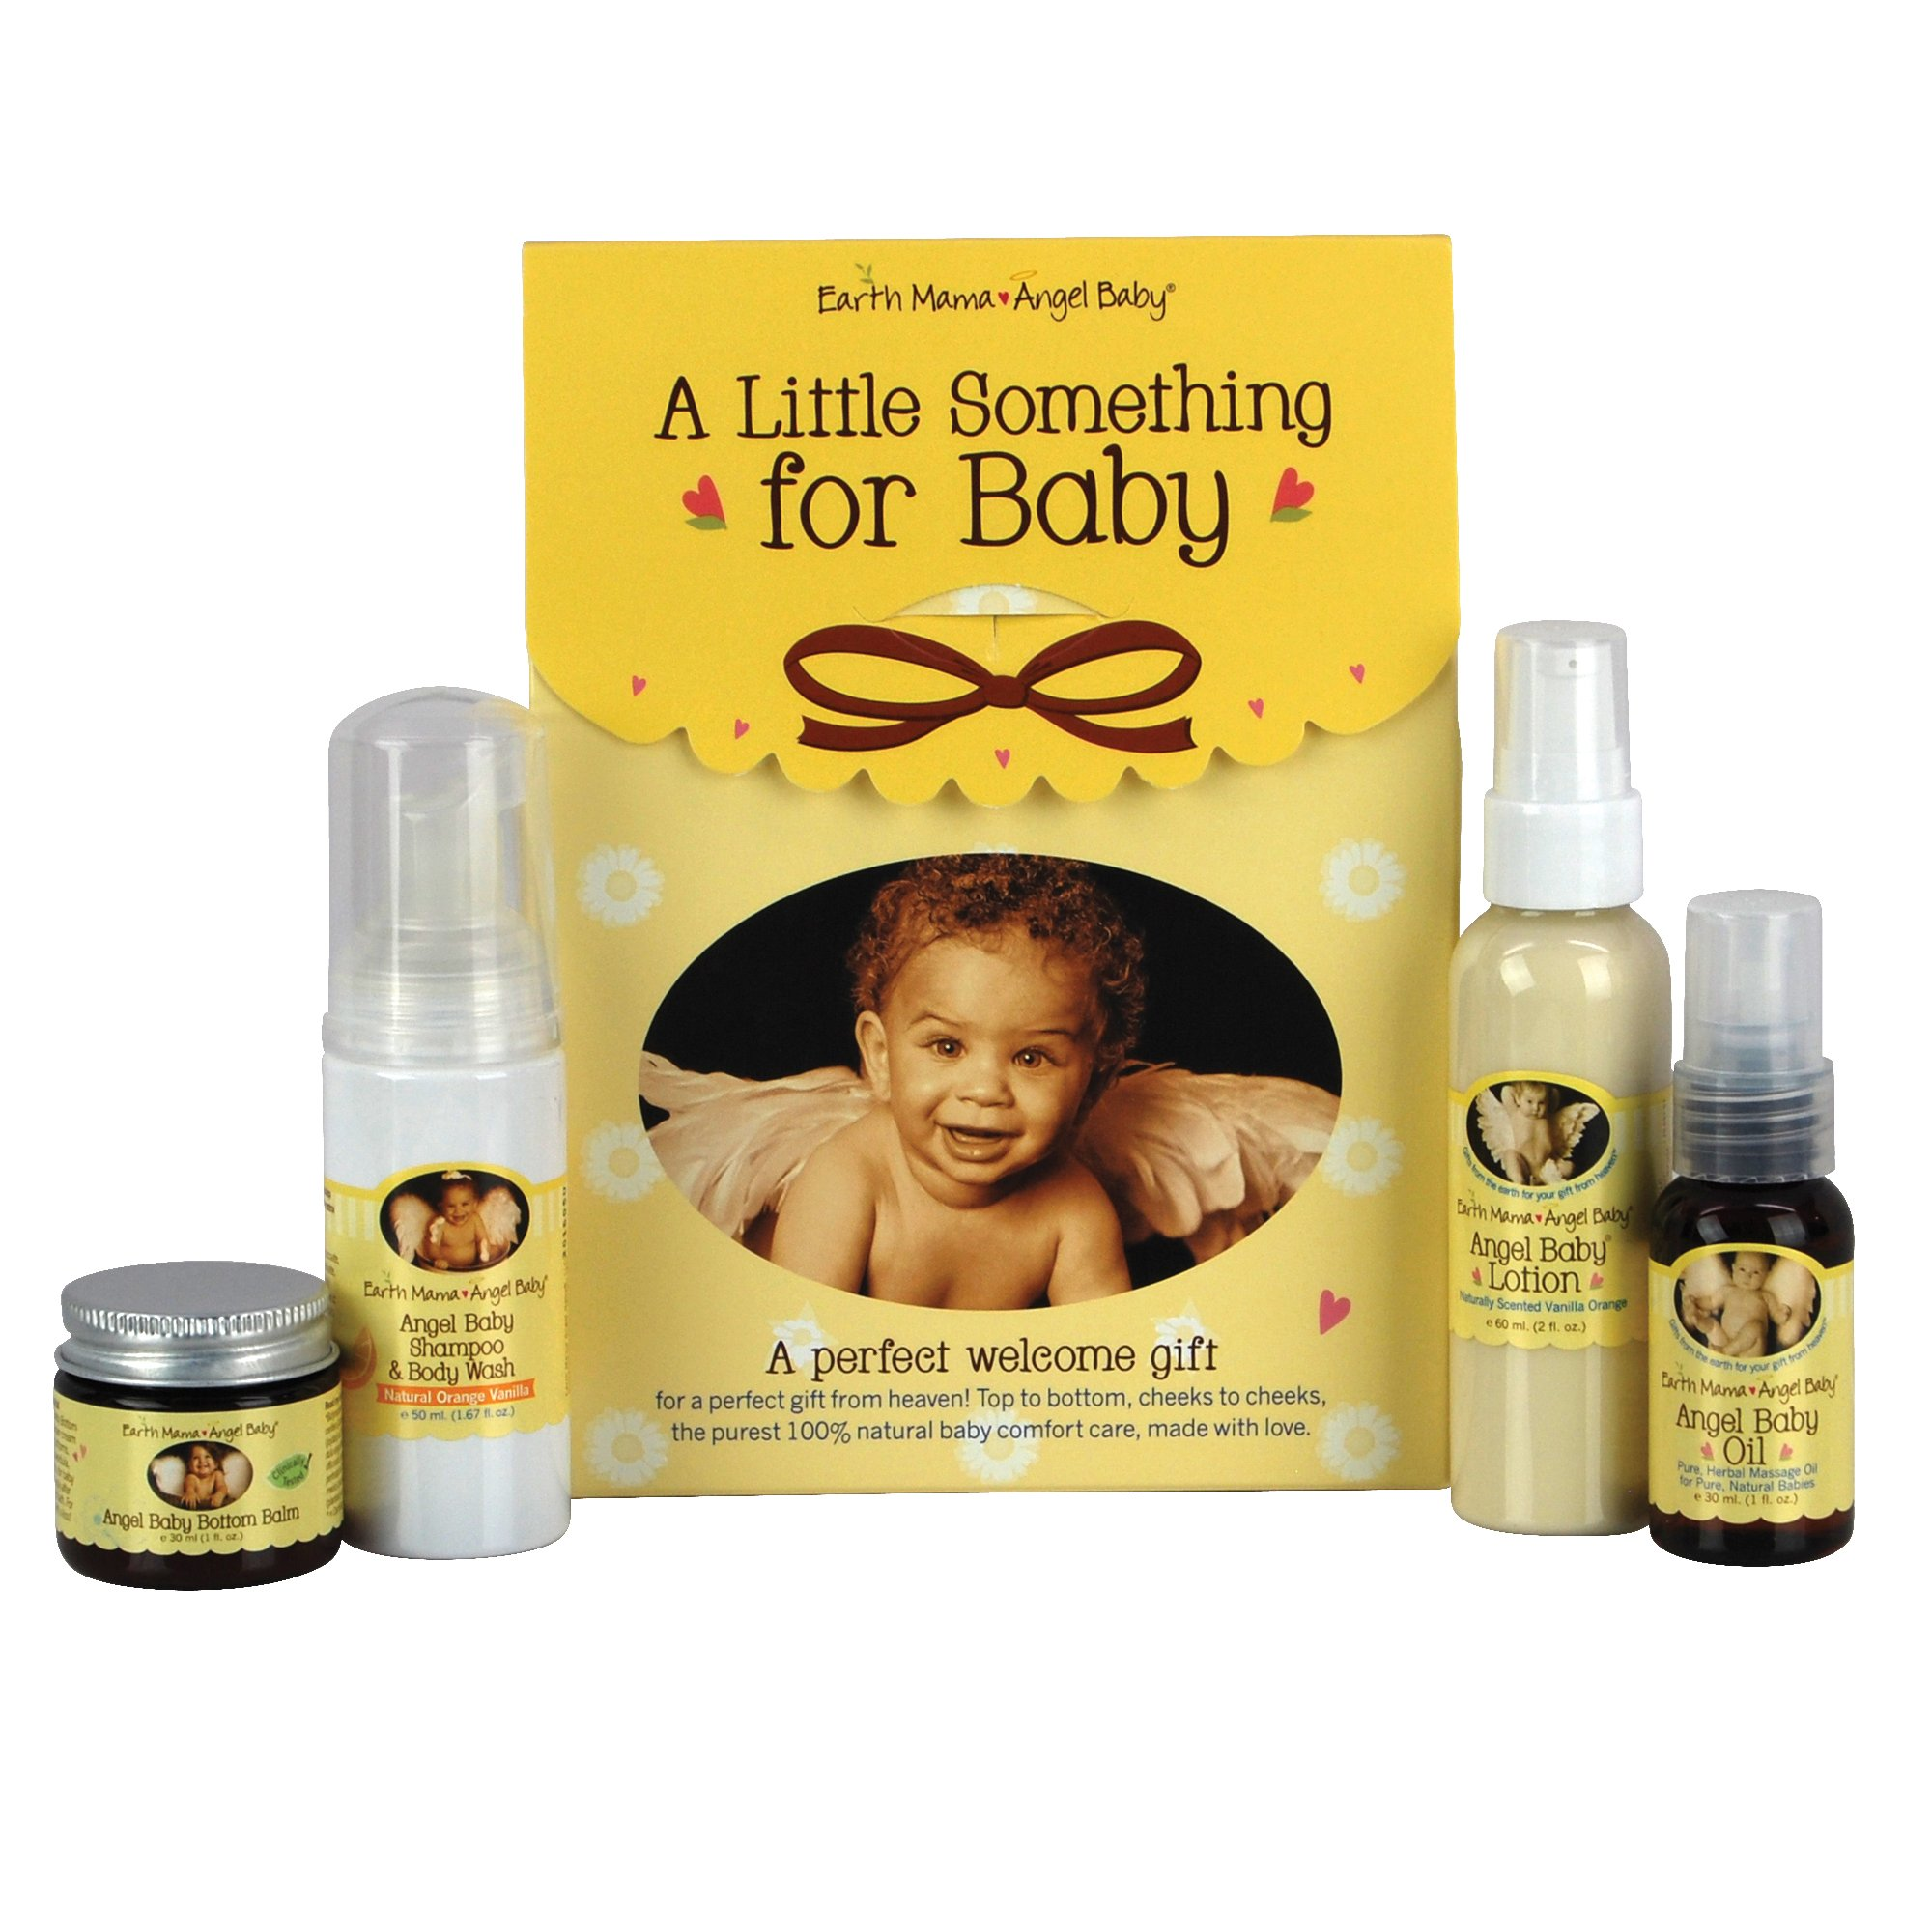 EARTH MAMA ANGEL BABY LITTLE SOMETHING FOR BABY, KIT